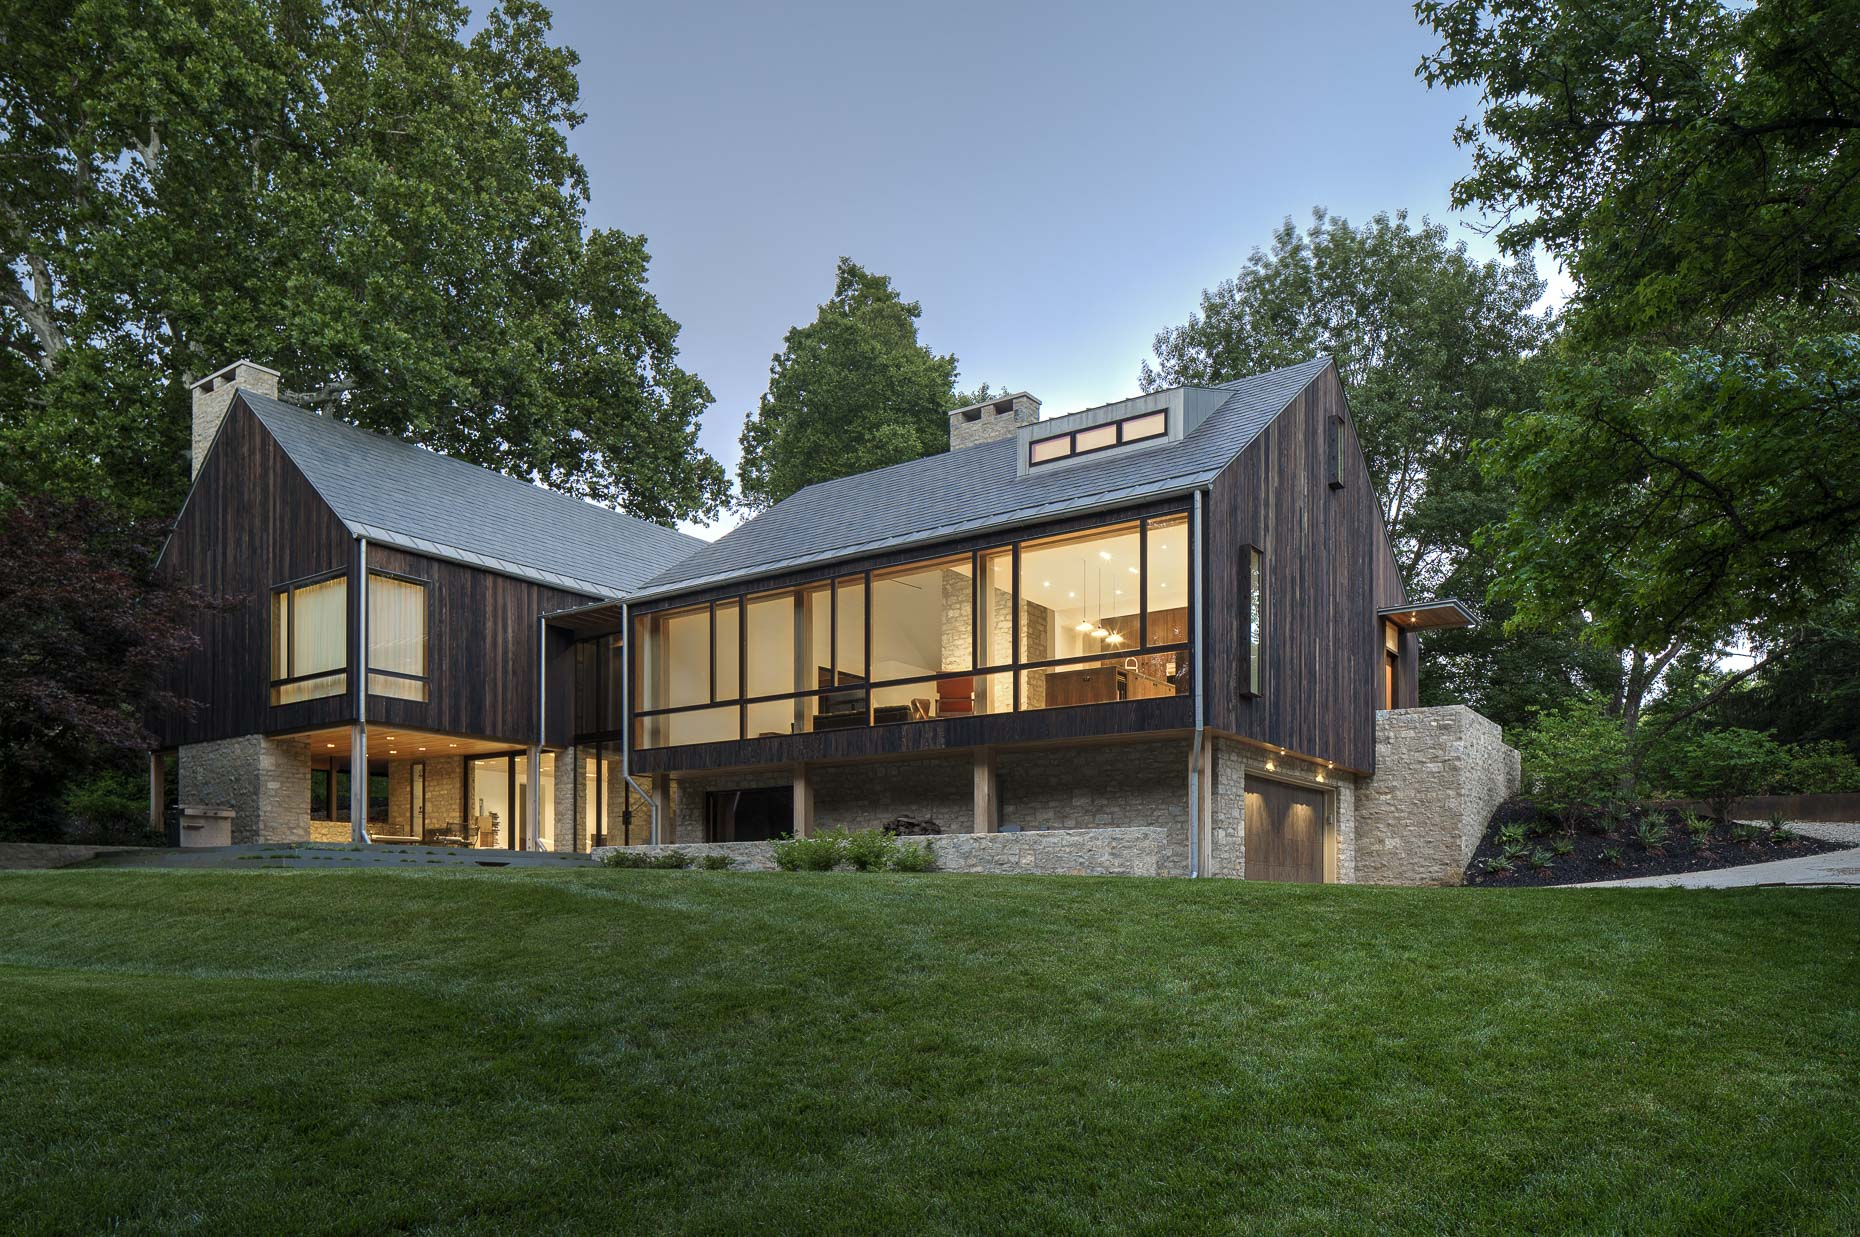 Sullivan Private Residence by JBAD photographed by Brad Feinknopf based in Columbus, Ohio